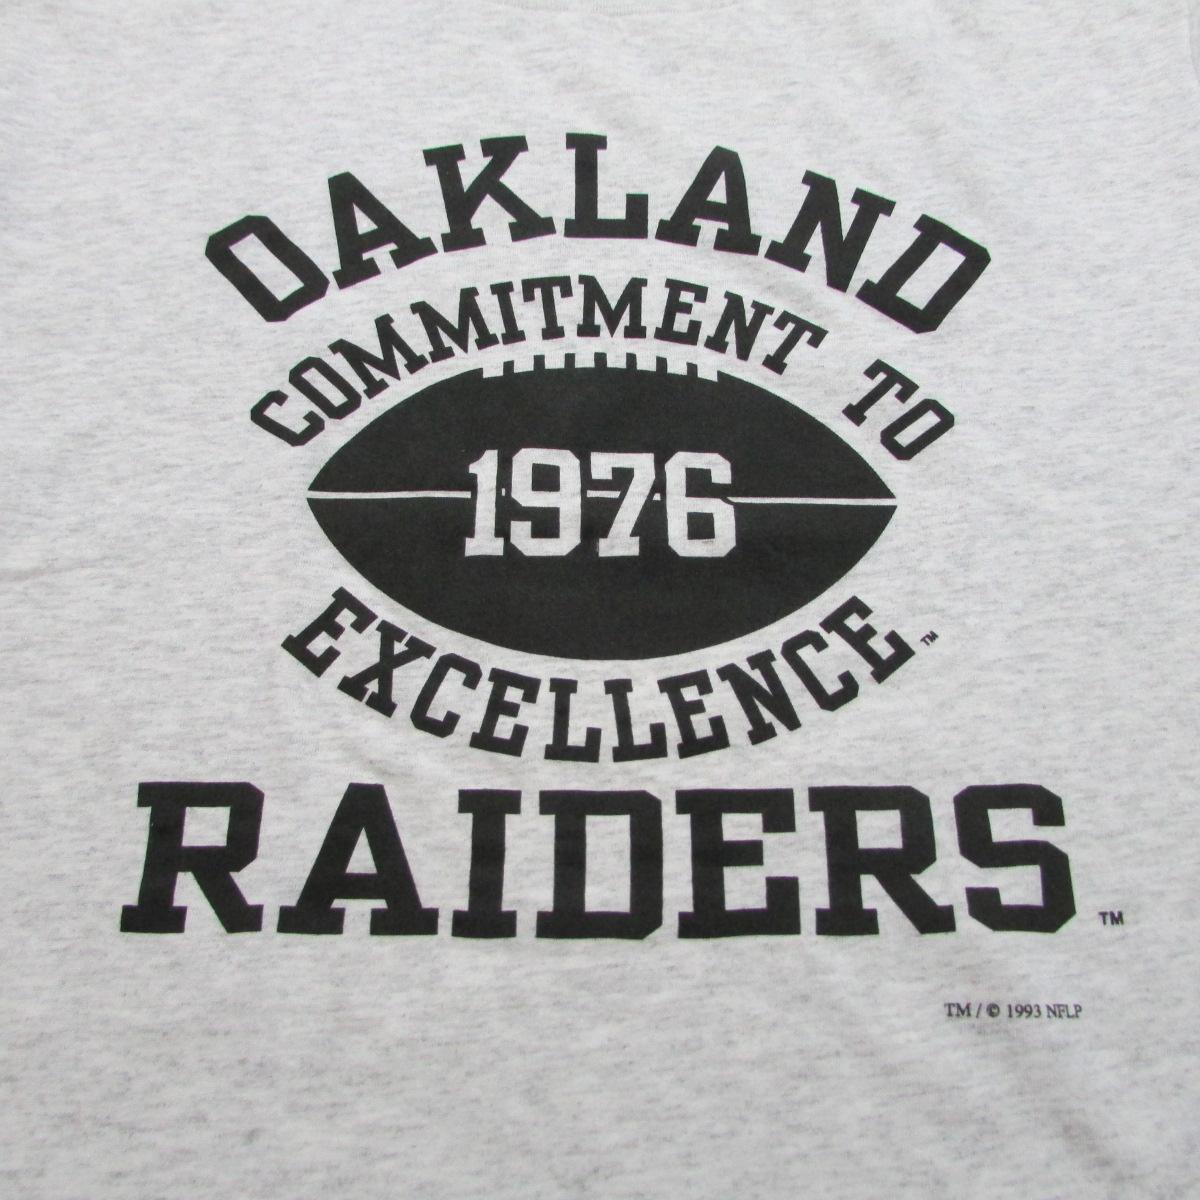 Oakland Raiders Commitment to Excellent Football T-Shirt Nutmeg Mills Sz M